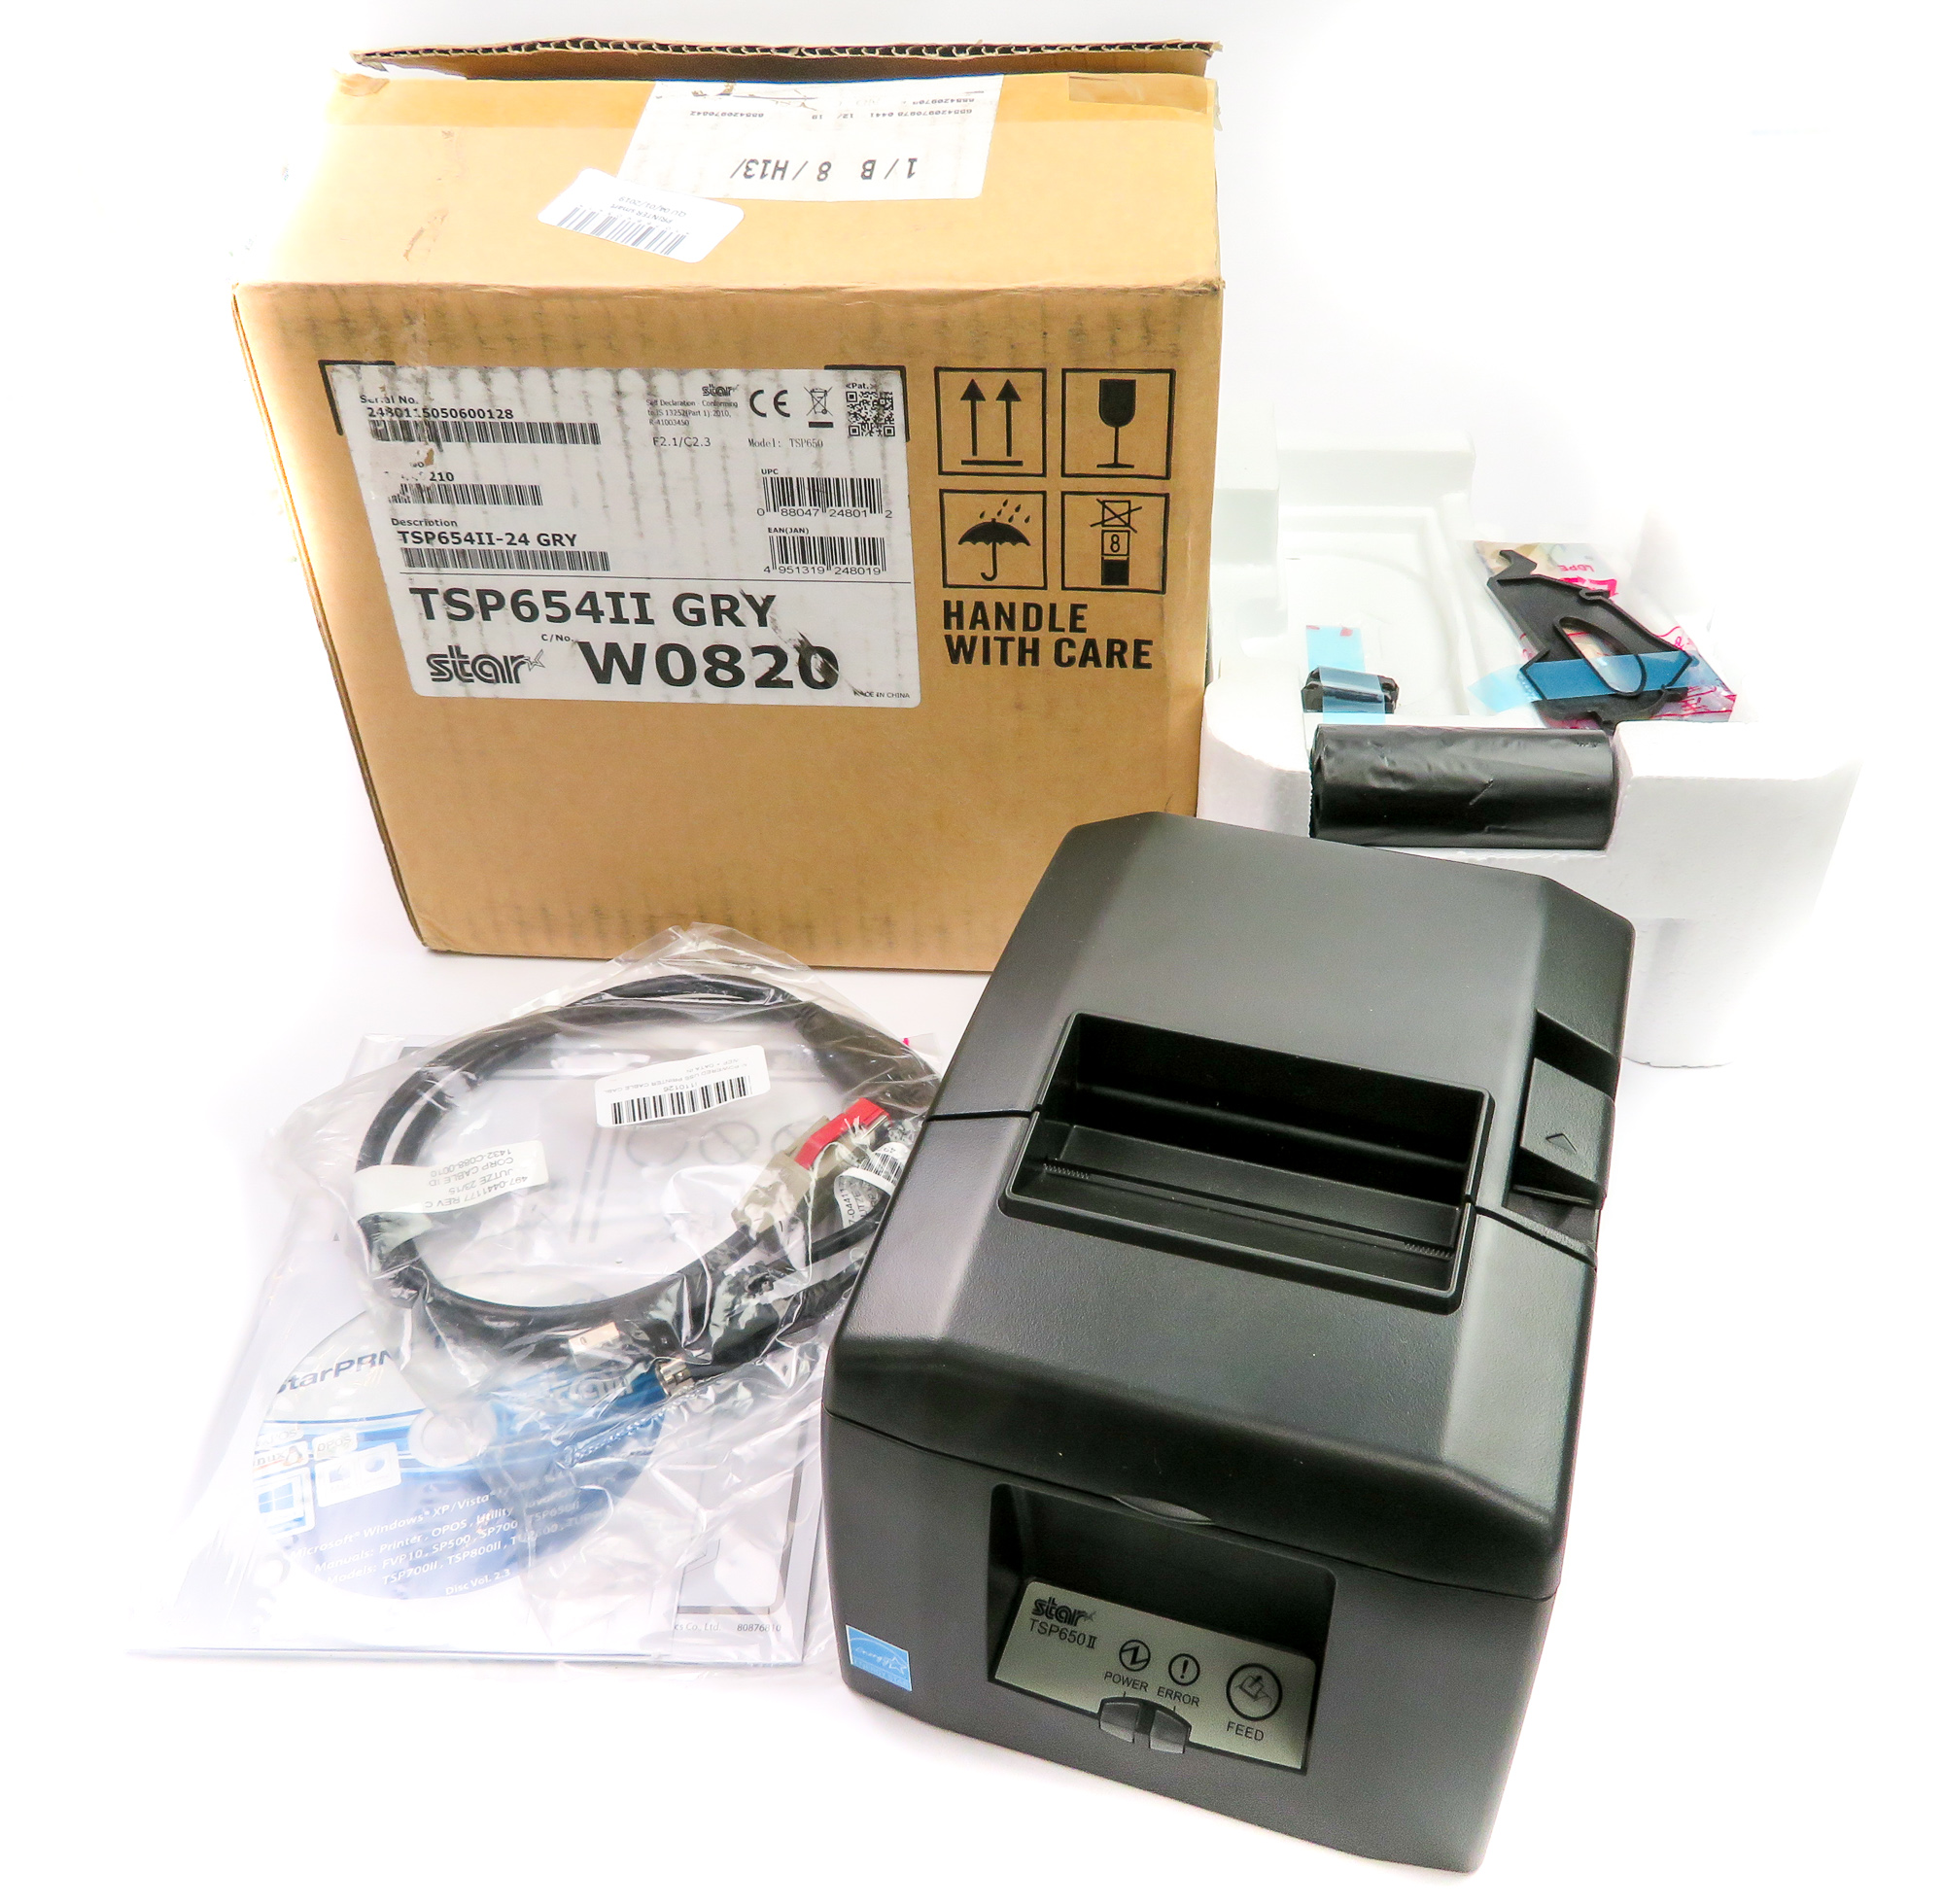 *New* Star Micronics TSP650 USB Thermal ePOS Receipt Printer TSP654II-24 GRY